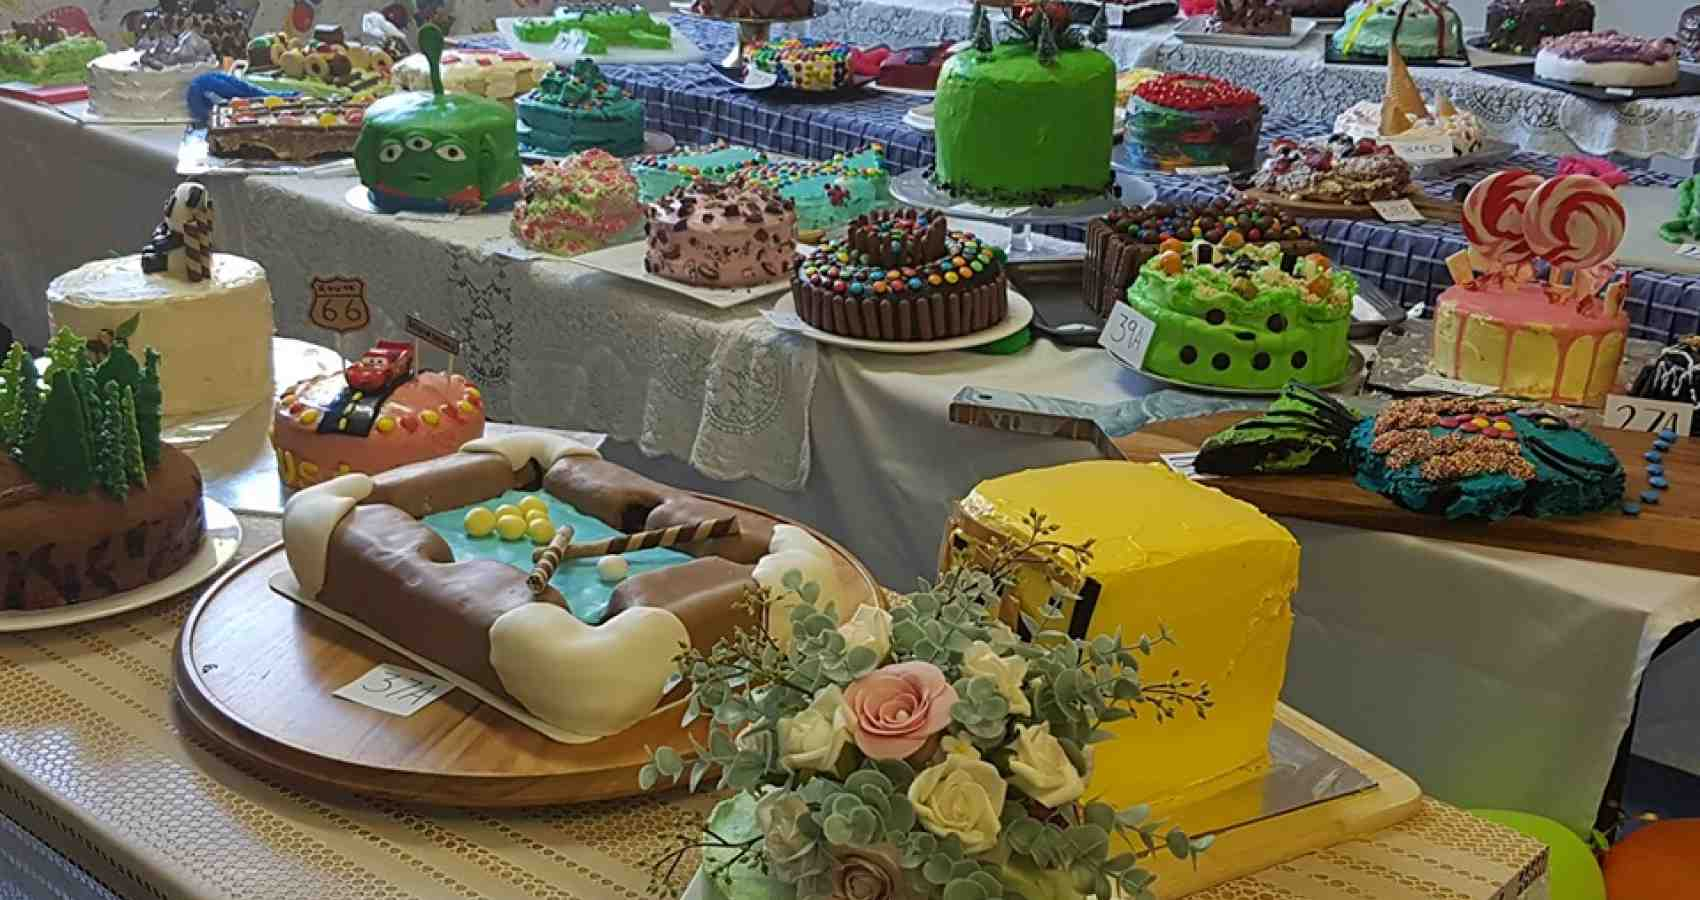 Full table cakes